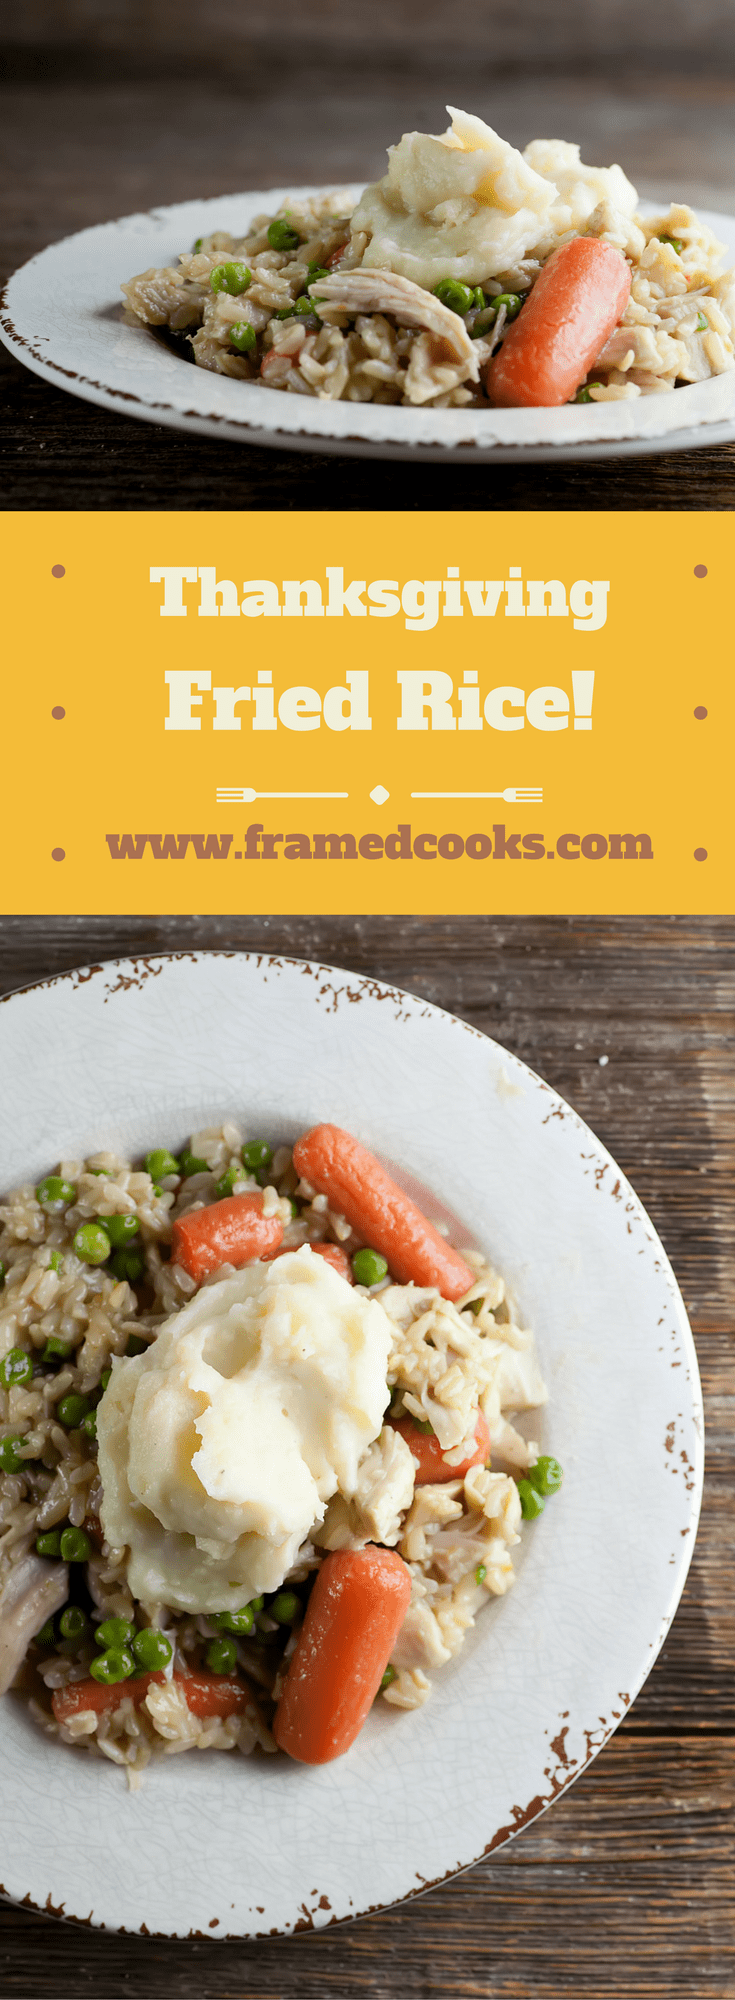 Want a fun alternative to a turkey sandwich? Put those leftovers to delicious good use with this easy recipe for Thanksgiving fried rice!